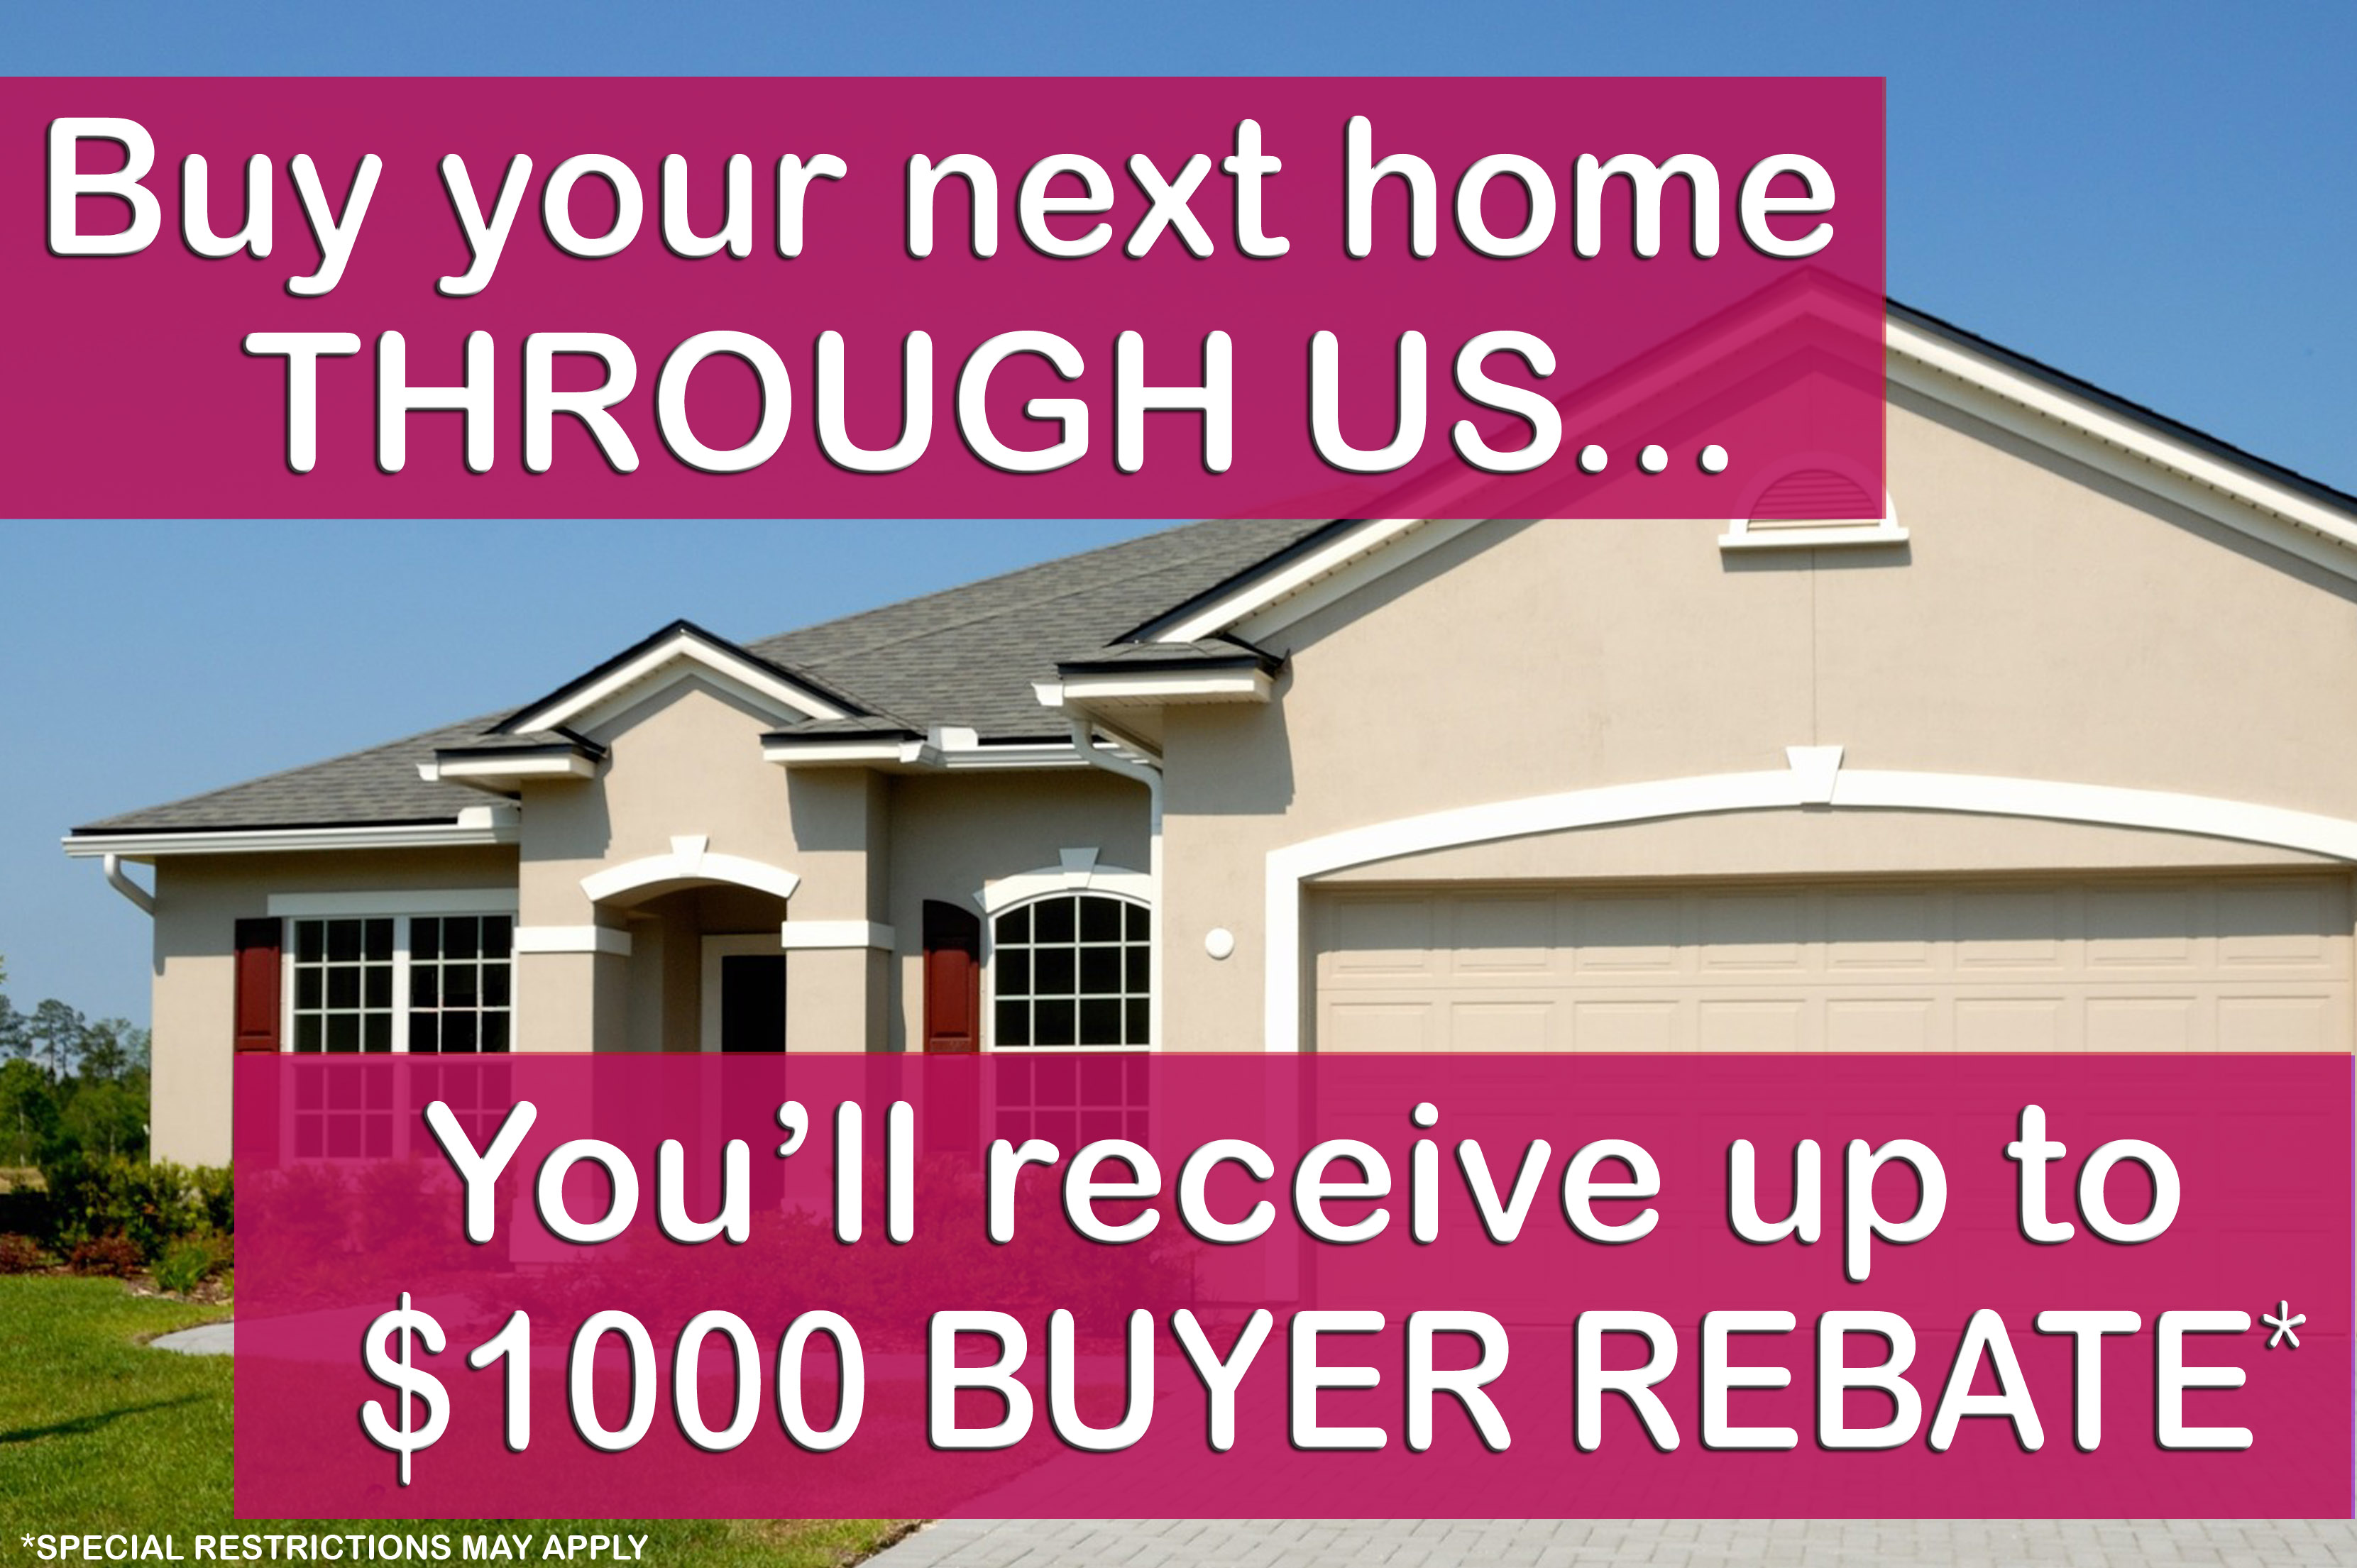 $1,000 Home Buyer REBATE*